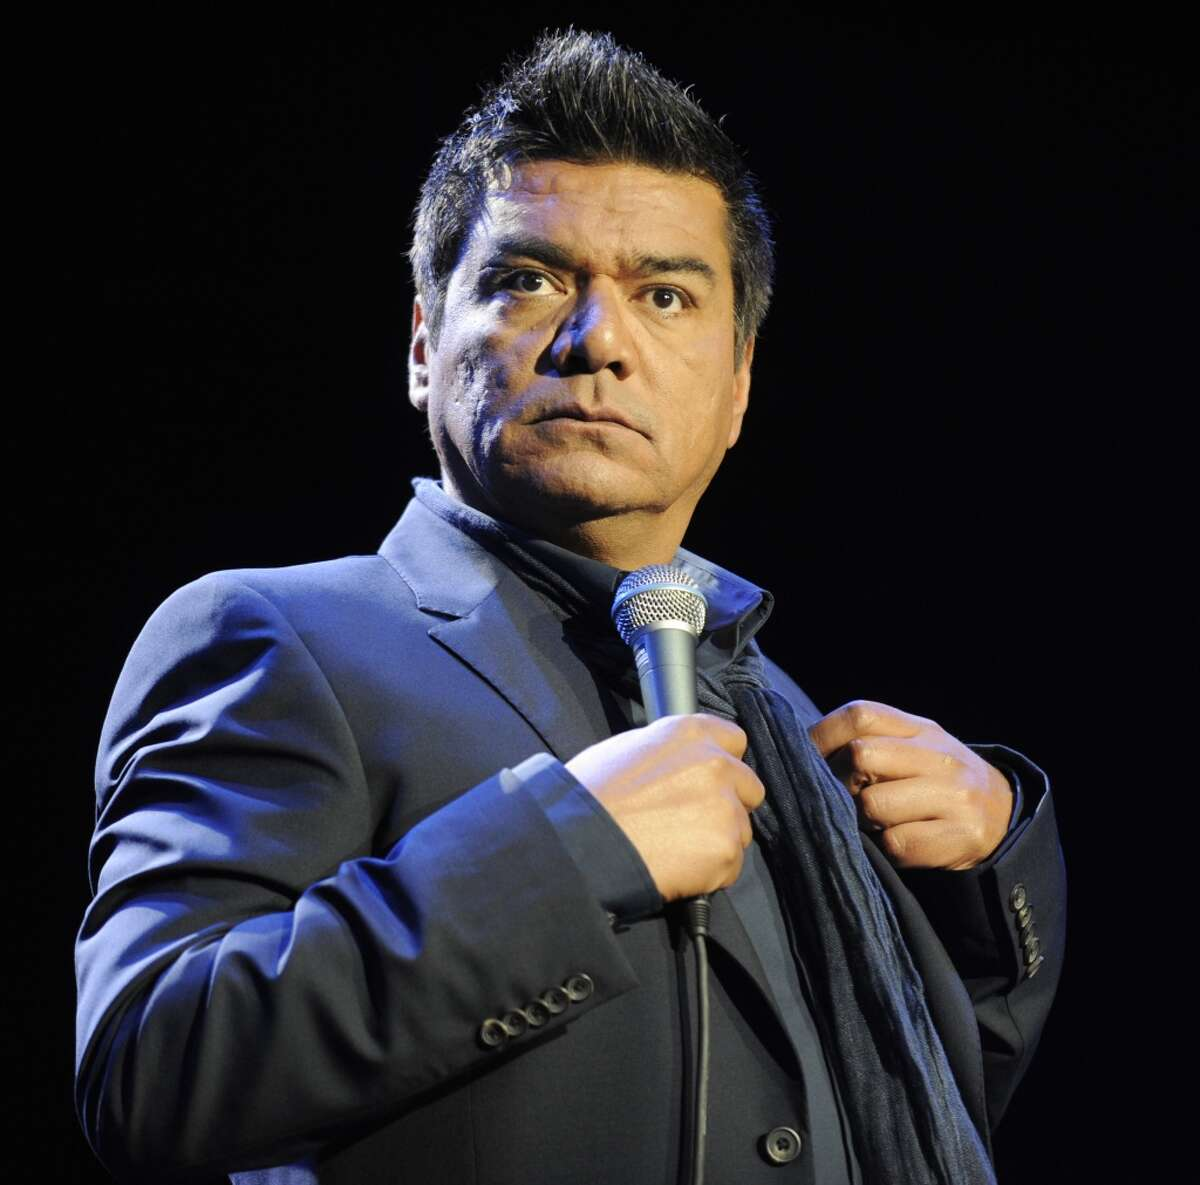 Or George Lopez? The royal family probably hopes not.